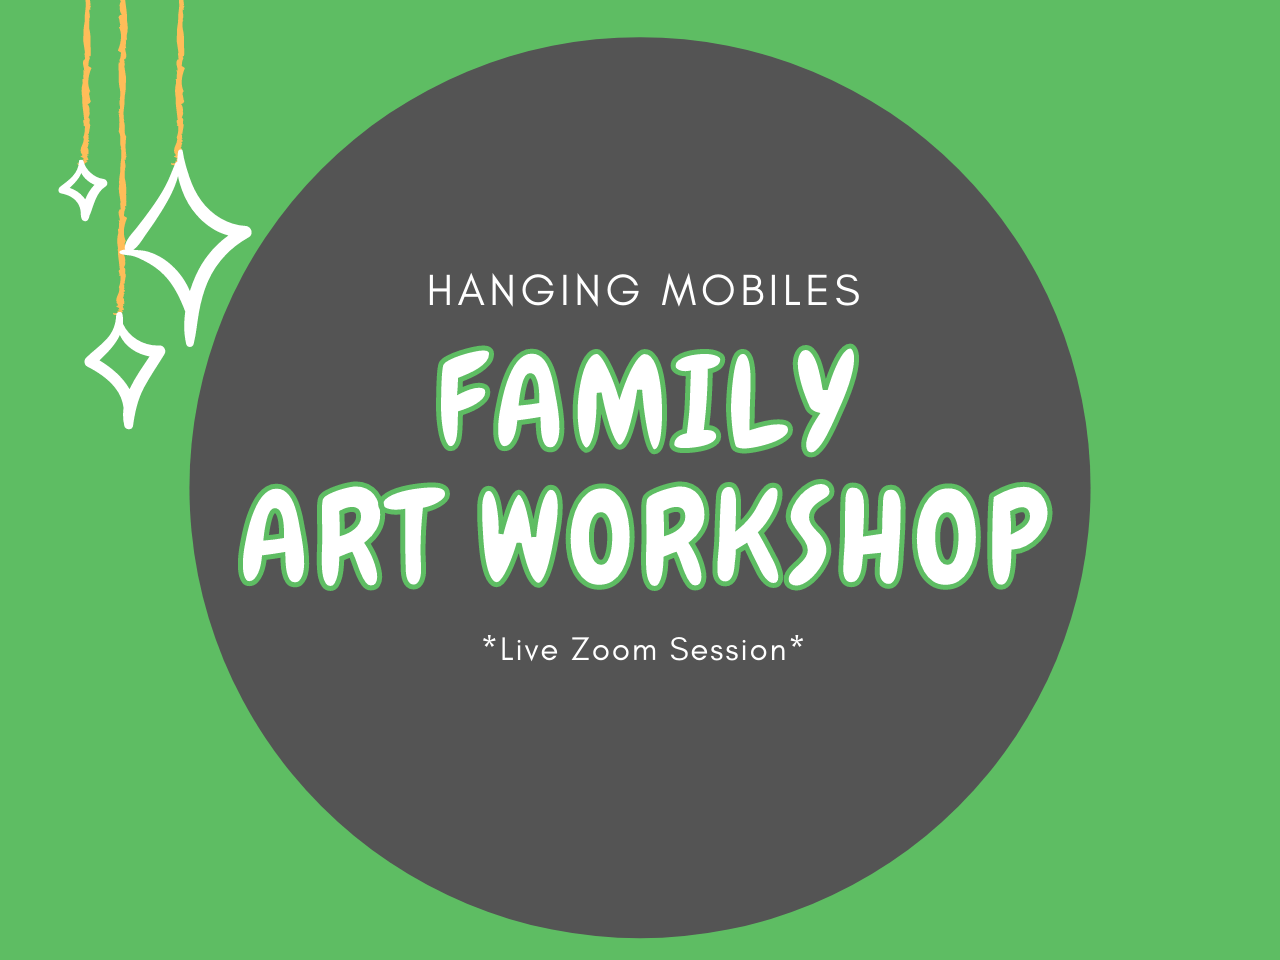 Family Art Workshop: Hanging Mobiles